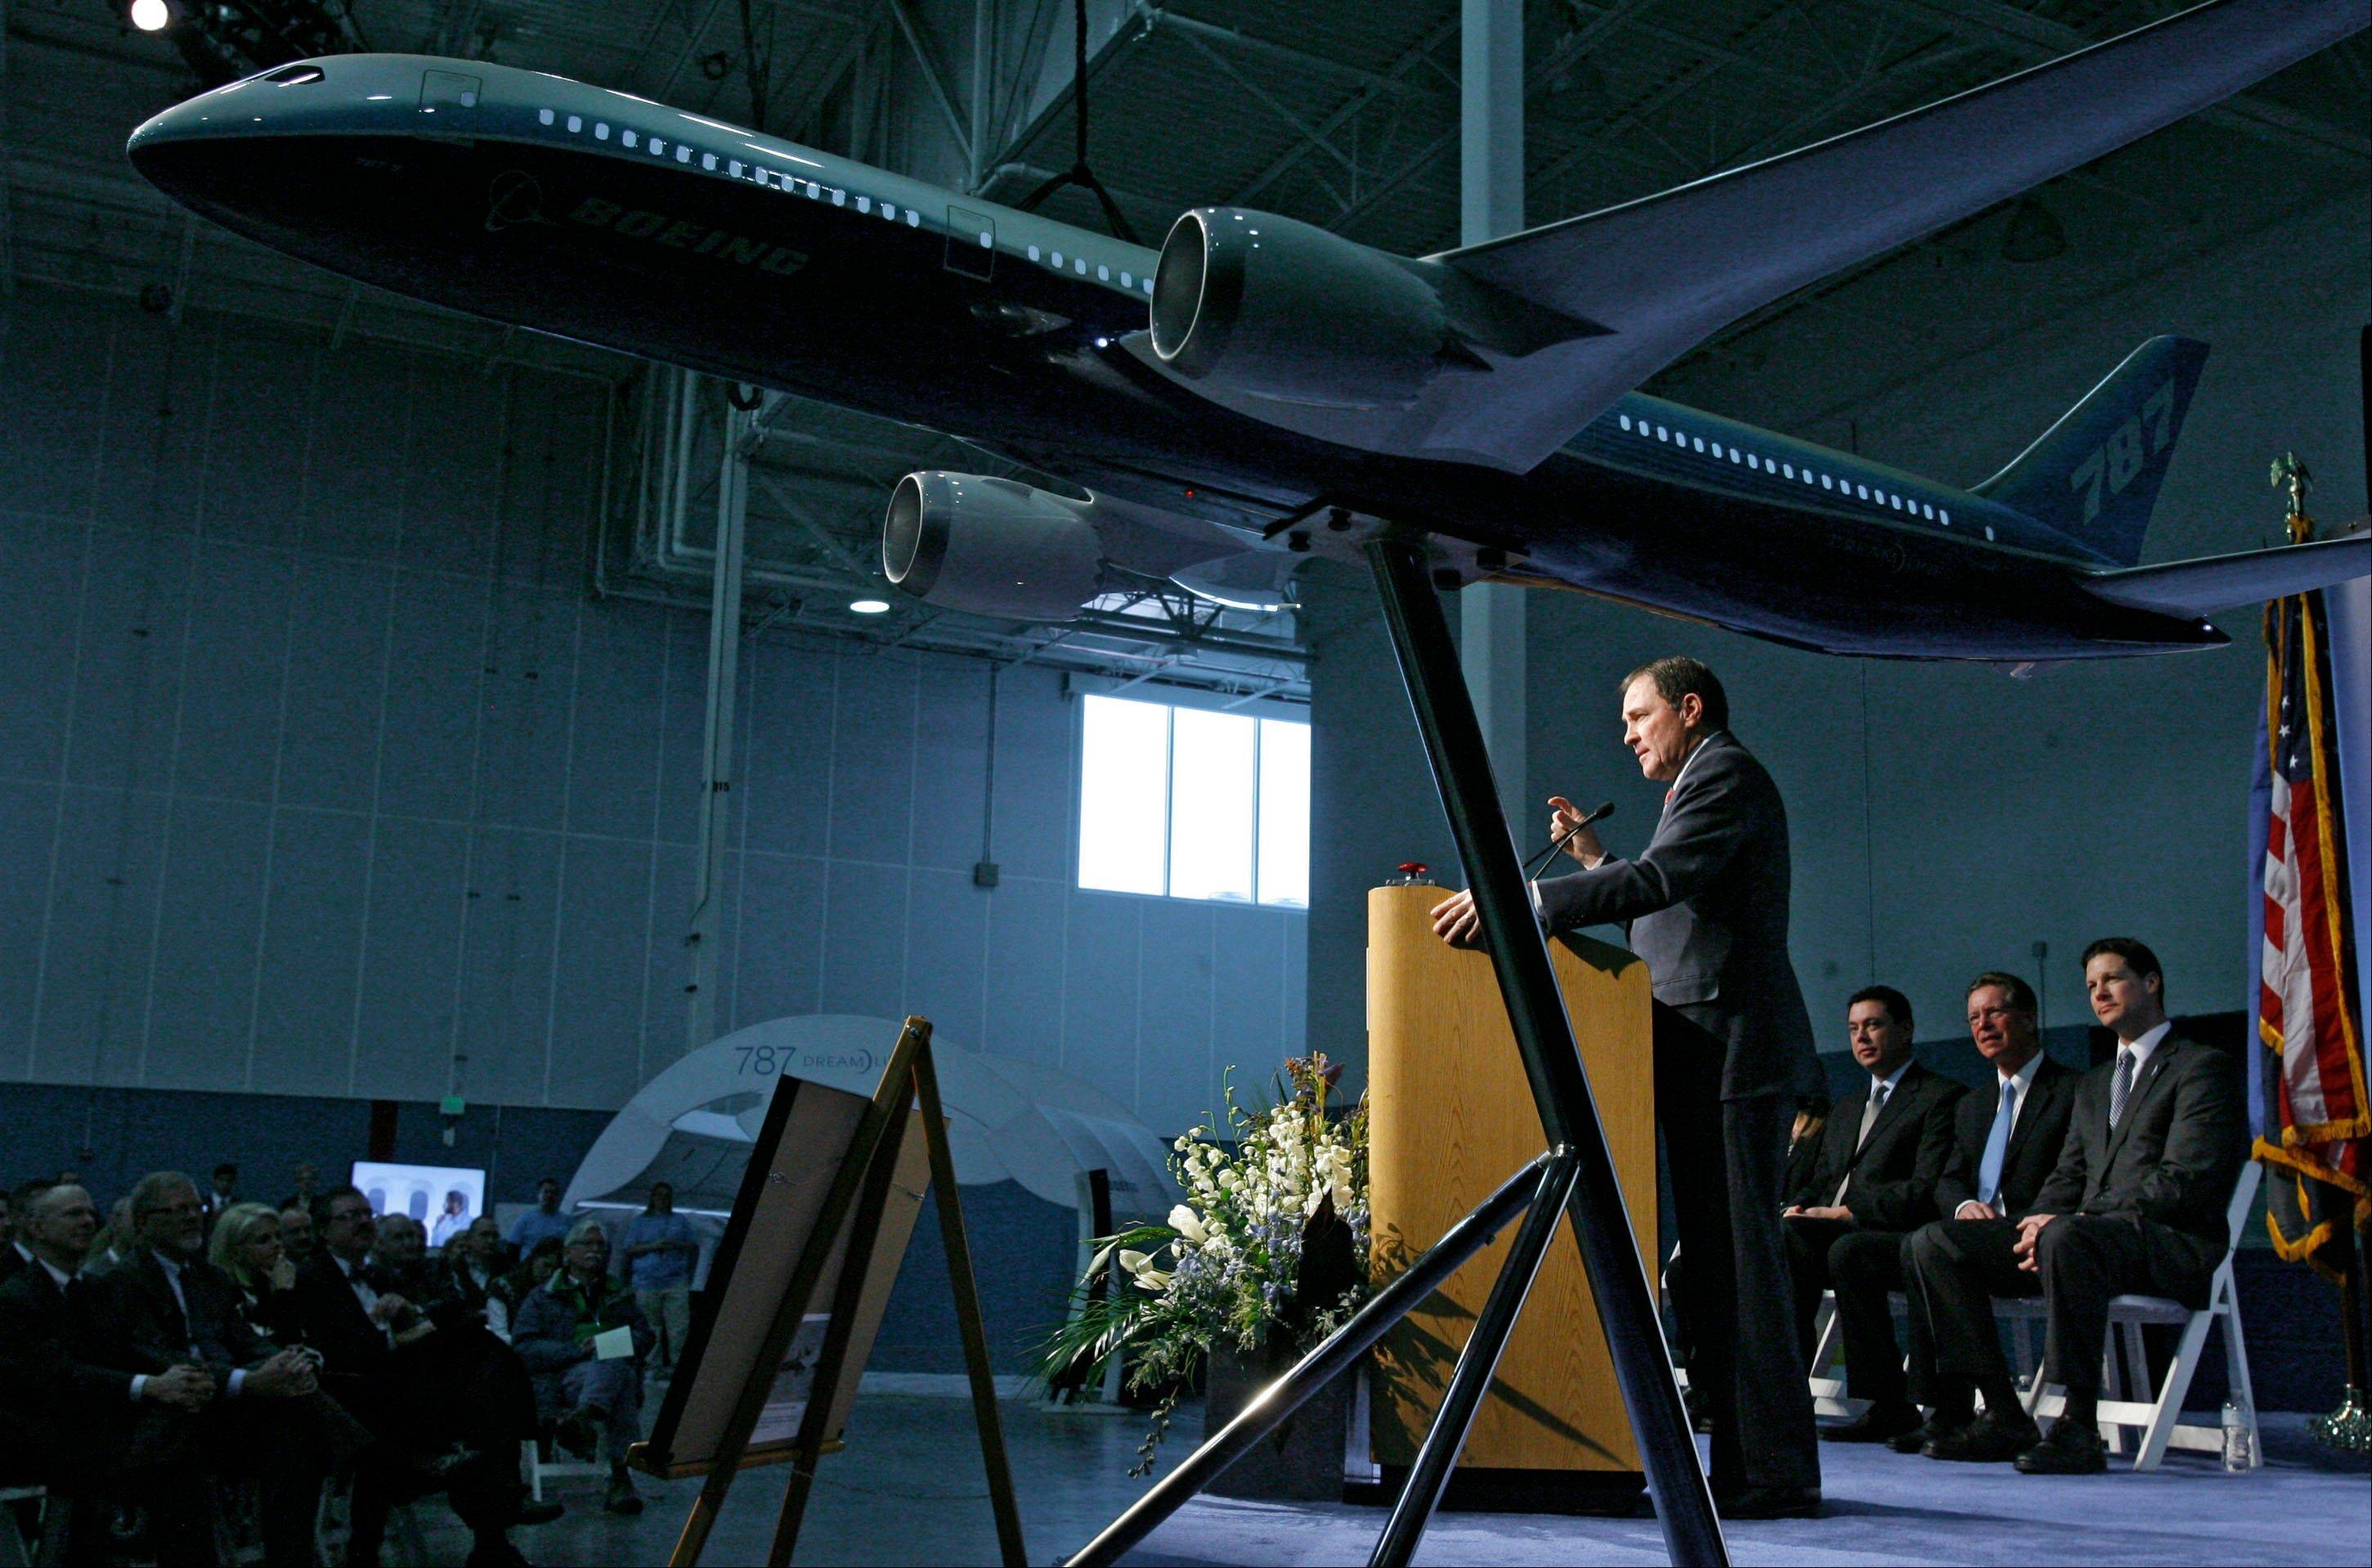 Gov. Gary Herbert speaks Friday as Boeing celebrates the opening of a new manufacturing plant in West Jordan, Utah.